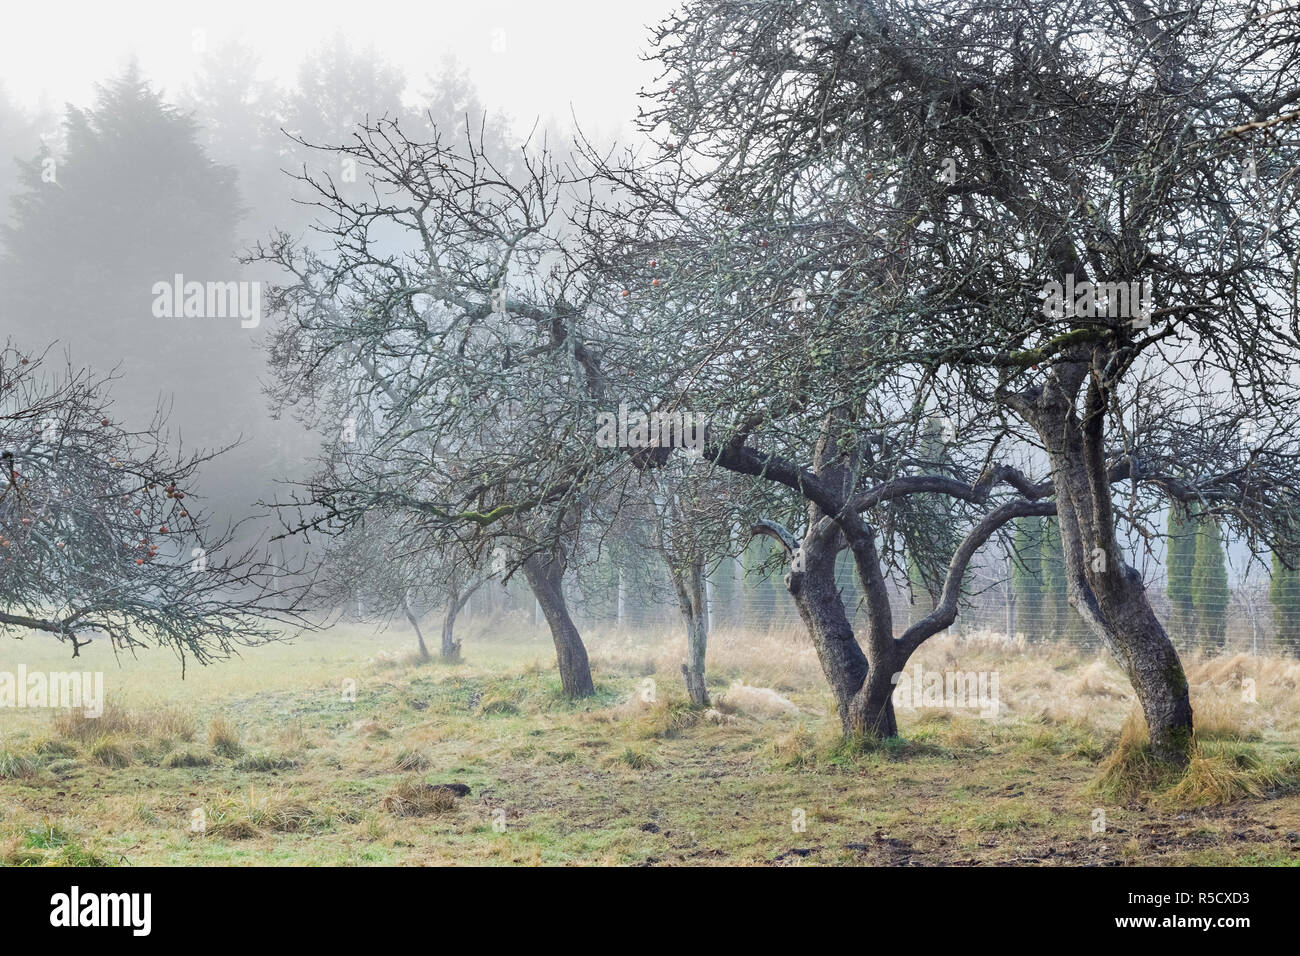 Bare, twisted old apple trees with a few red fruit still hanging stand on a foggy winter morning, with a tall forest just visible in the background. - Stock Image